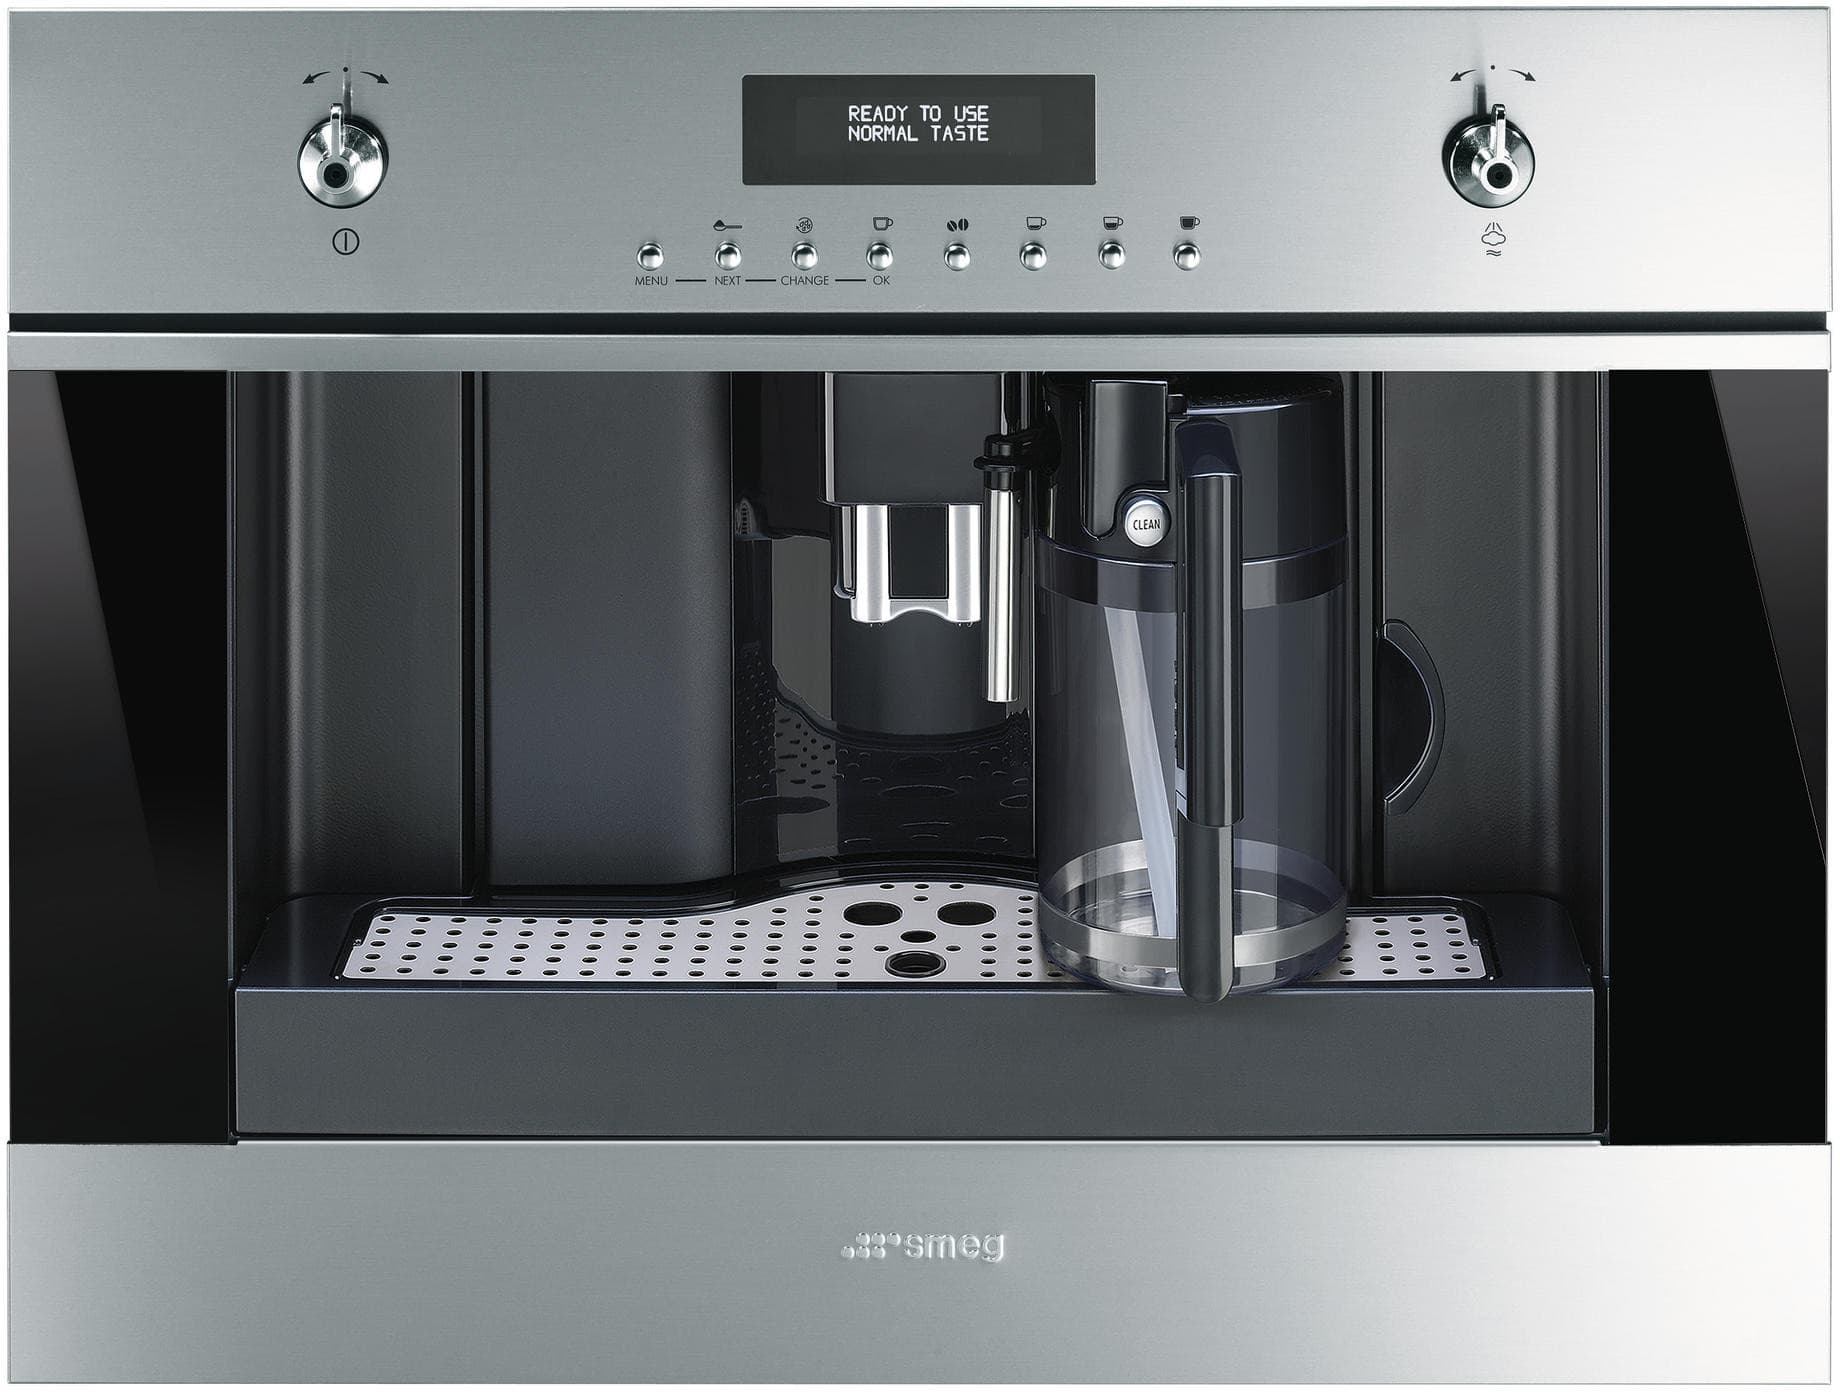 nuova simonelli maker from society bean buy caffe online cup machines to talento coffee plumbing machine plumbed